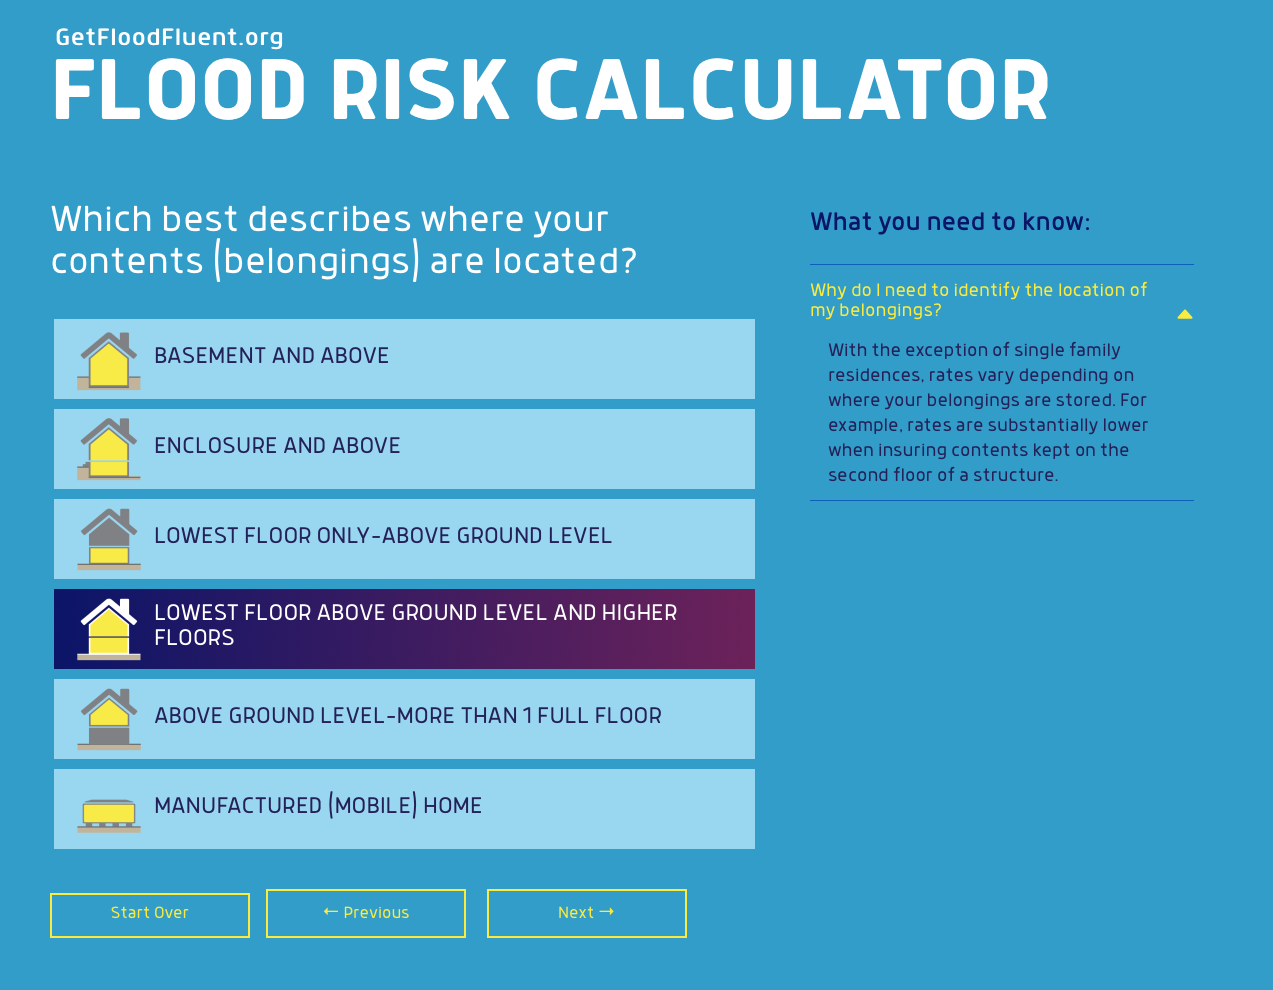 Image with text outlining how to determine flood risk using the flood risk calculator